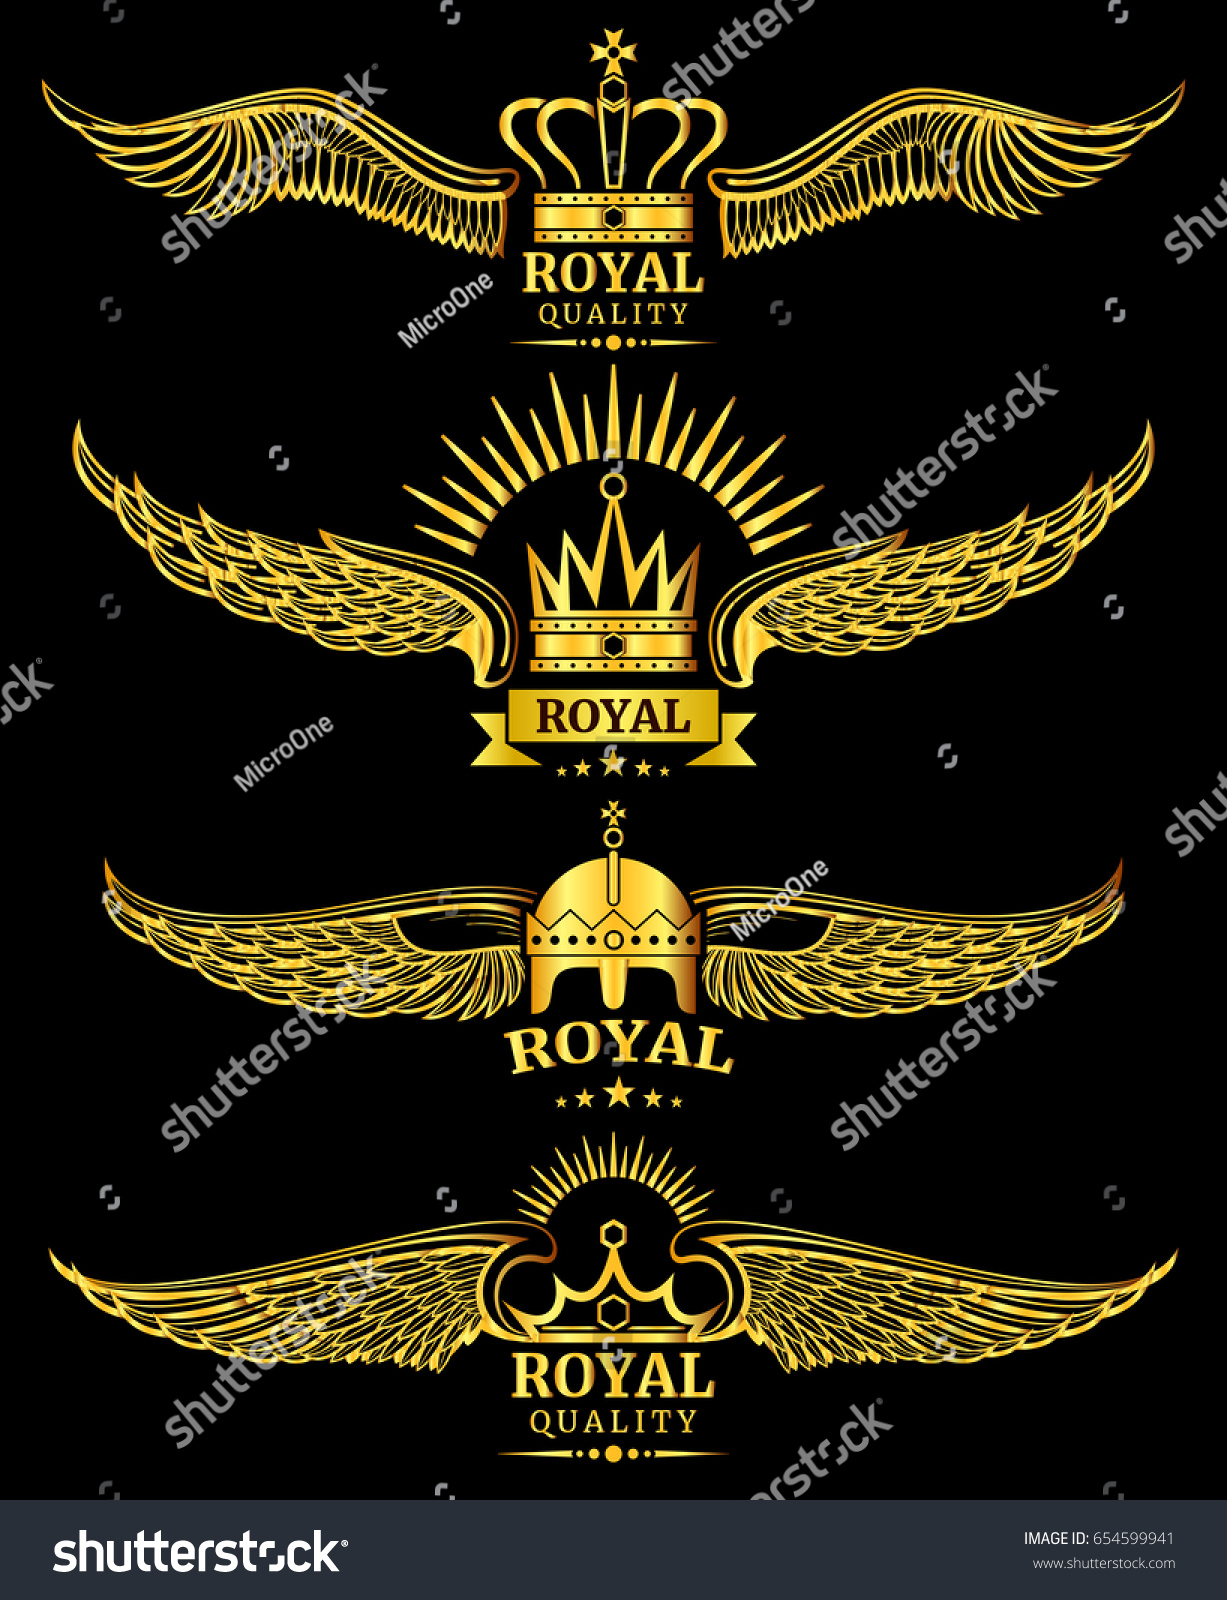 Golden Wing Crown Royal Quality Luxury Logo Templates Illustration